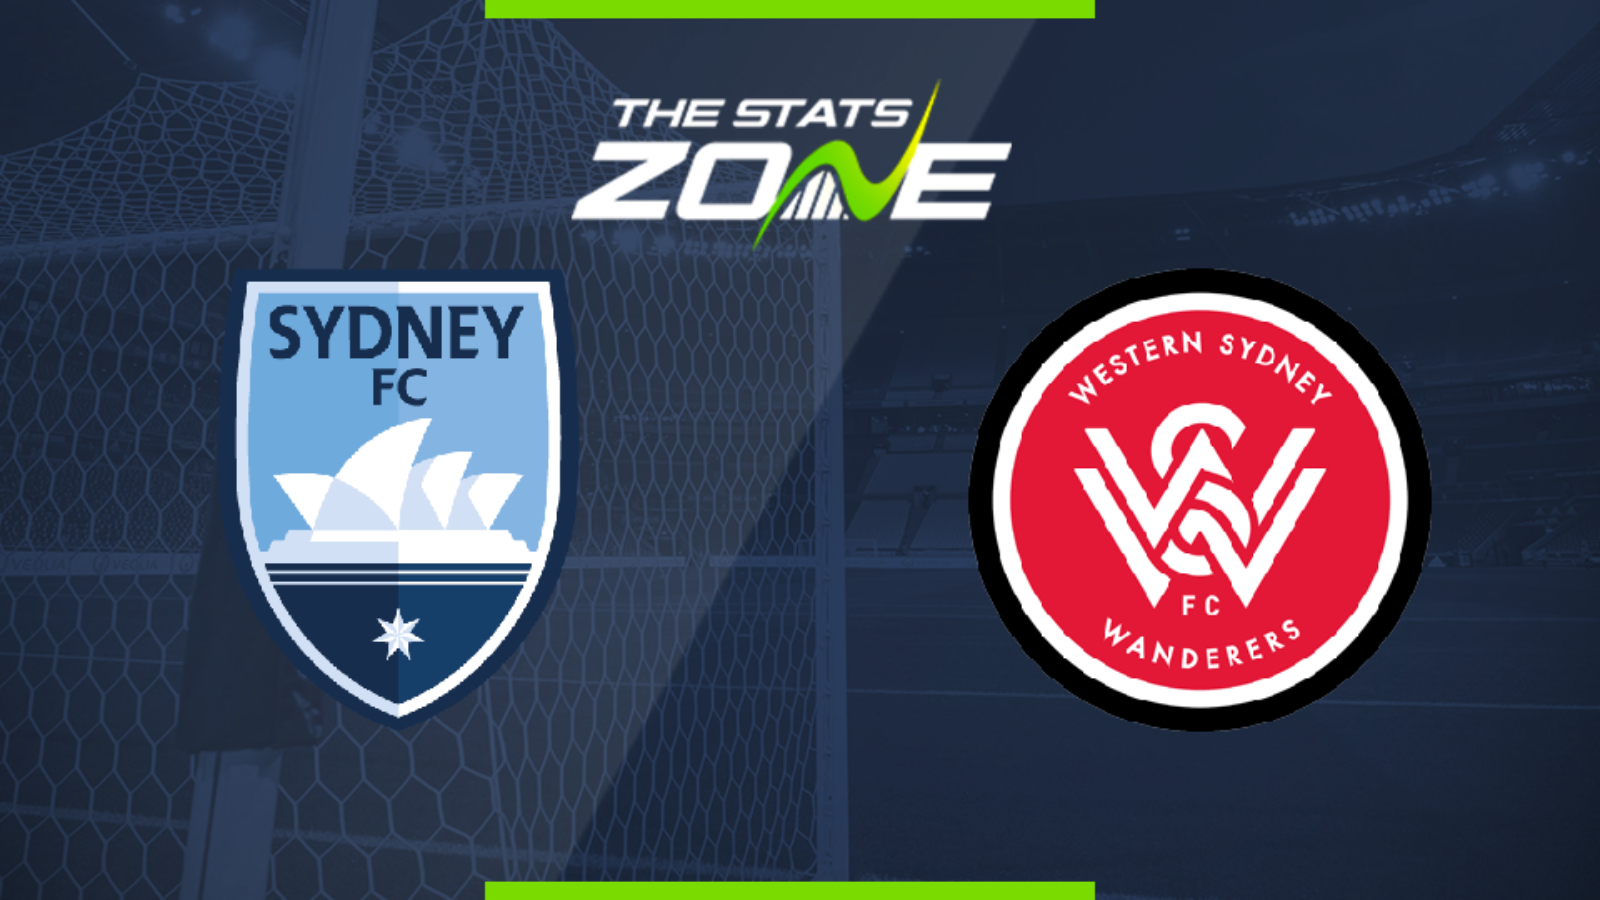 Western sydney wanderers vs adelaide betting tips how does each way betting work in f1